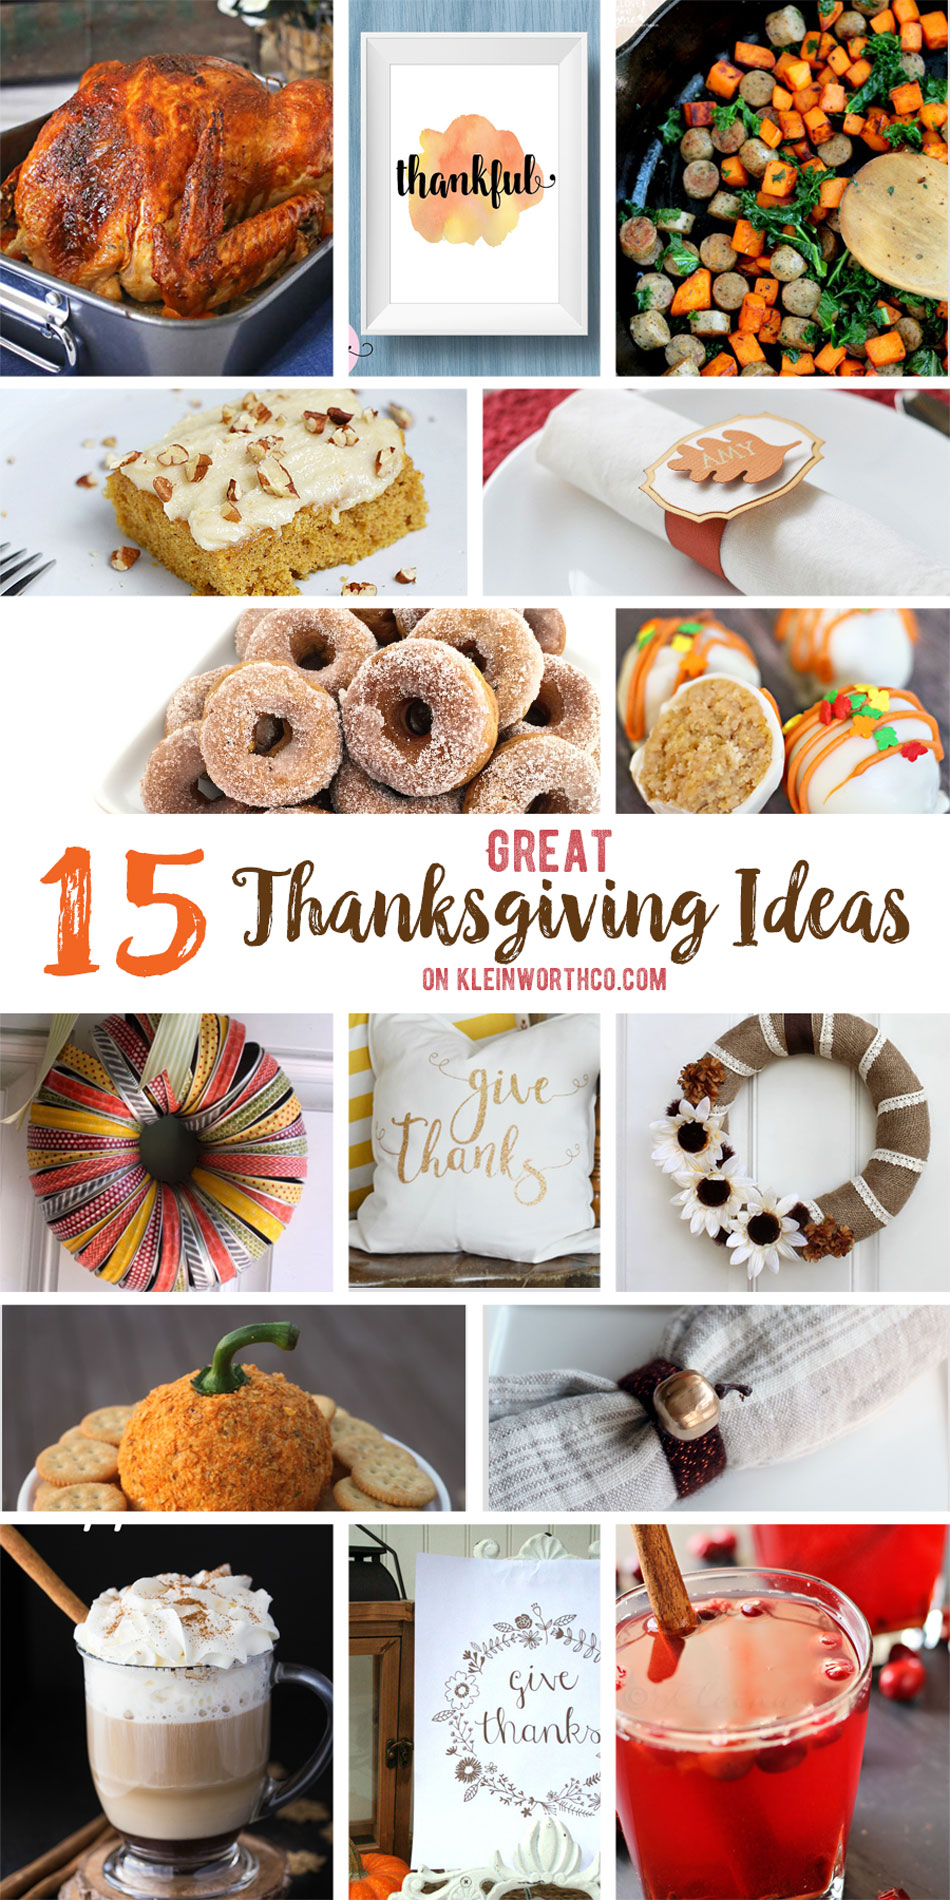 15 Great Hair Updos For Thanksgiving: 15 Great Thanksgiving Ideas : Create Link Inspire 154